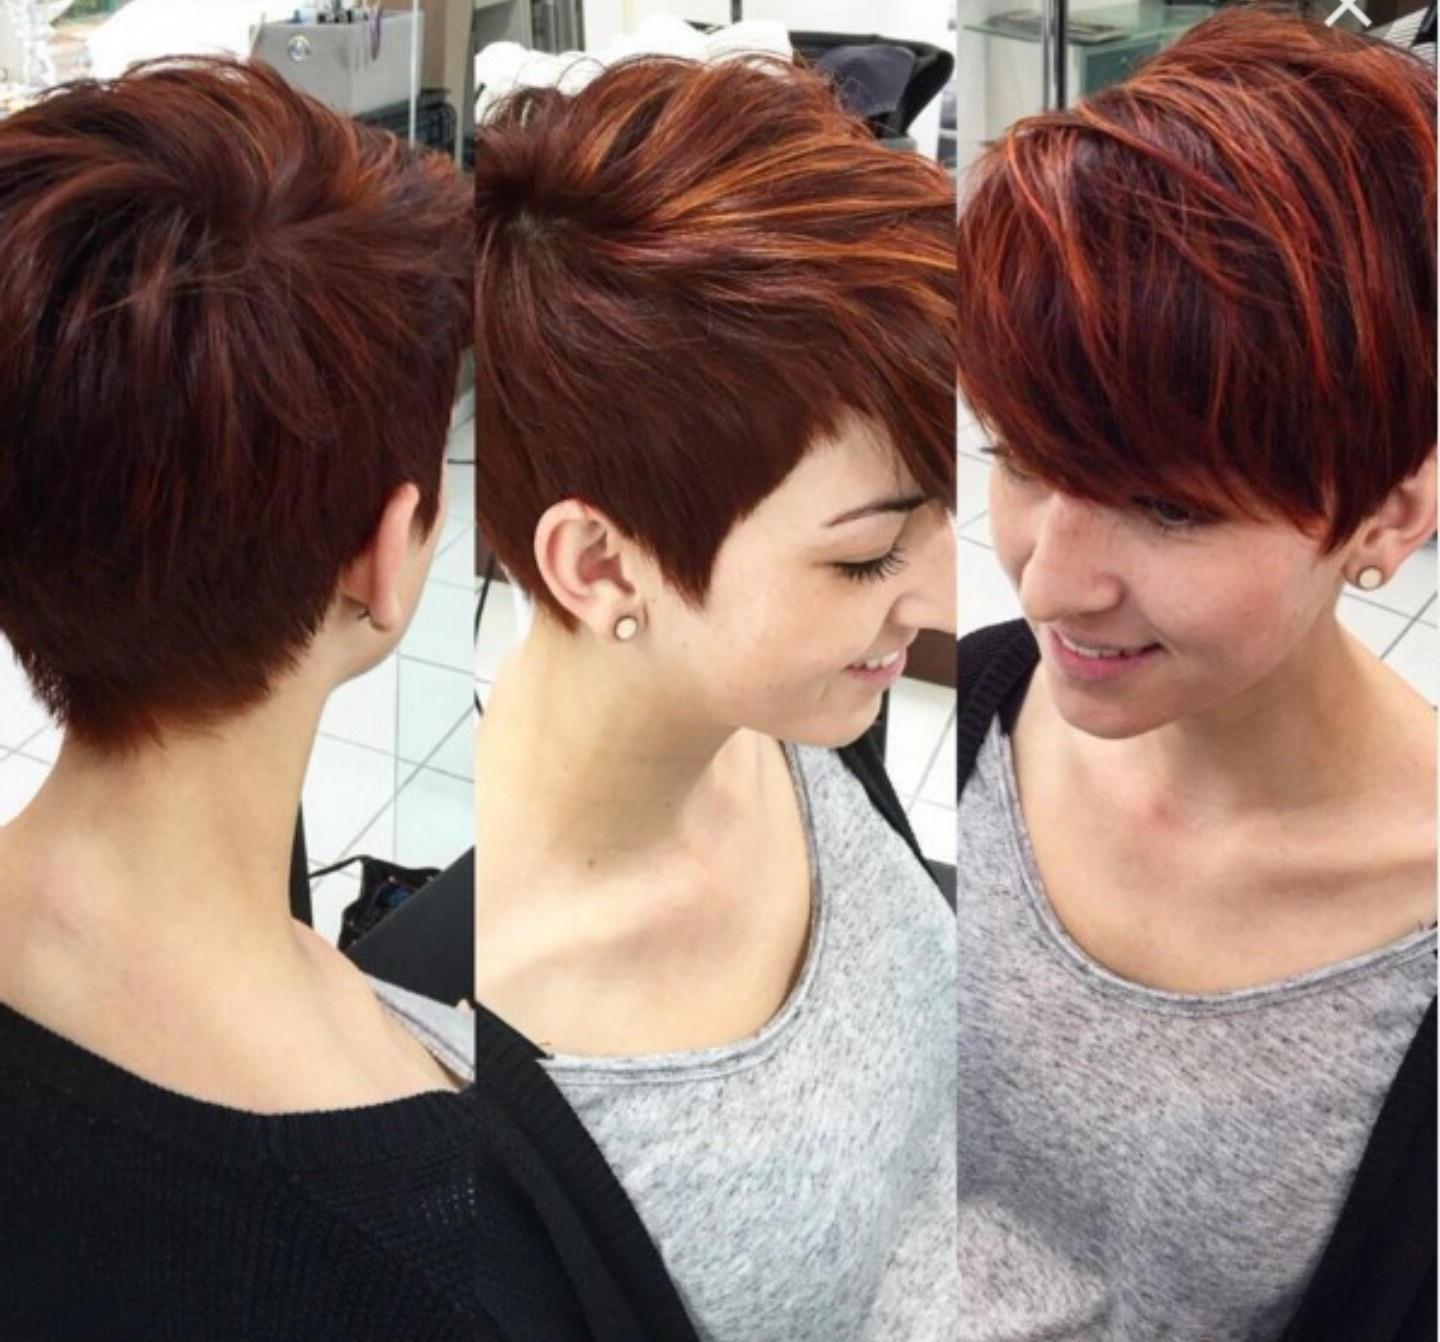 Caramel Colored Pixie With Long Side Bangs   Hair   Pinterest Intended For Best And Newest Pixie Hairstyles With Bangs (View 4 of 15)